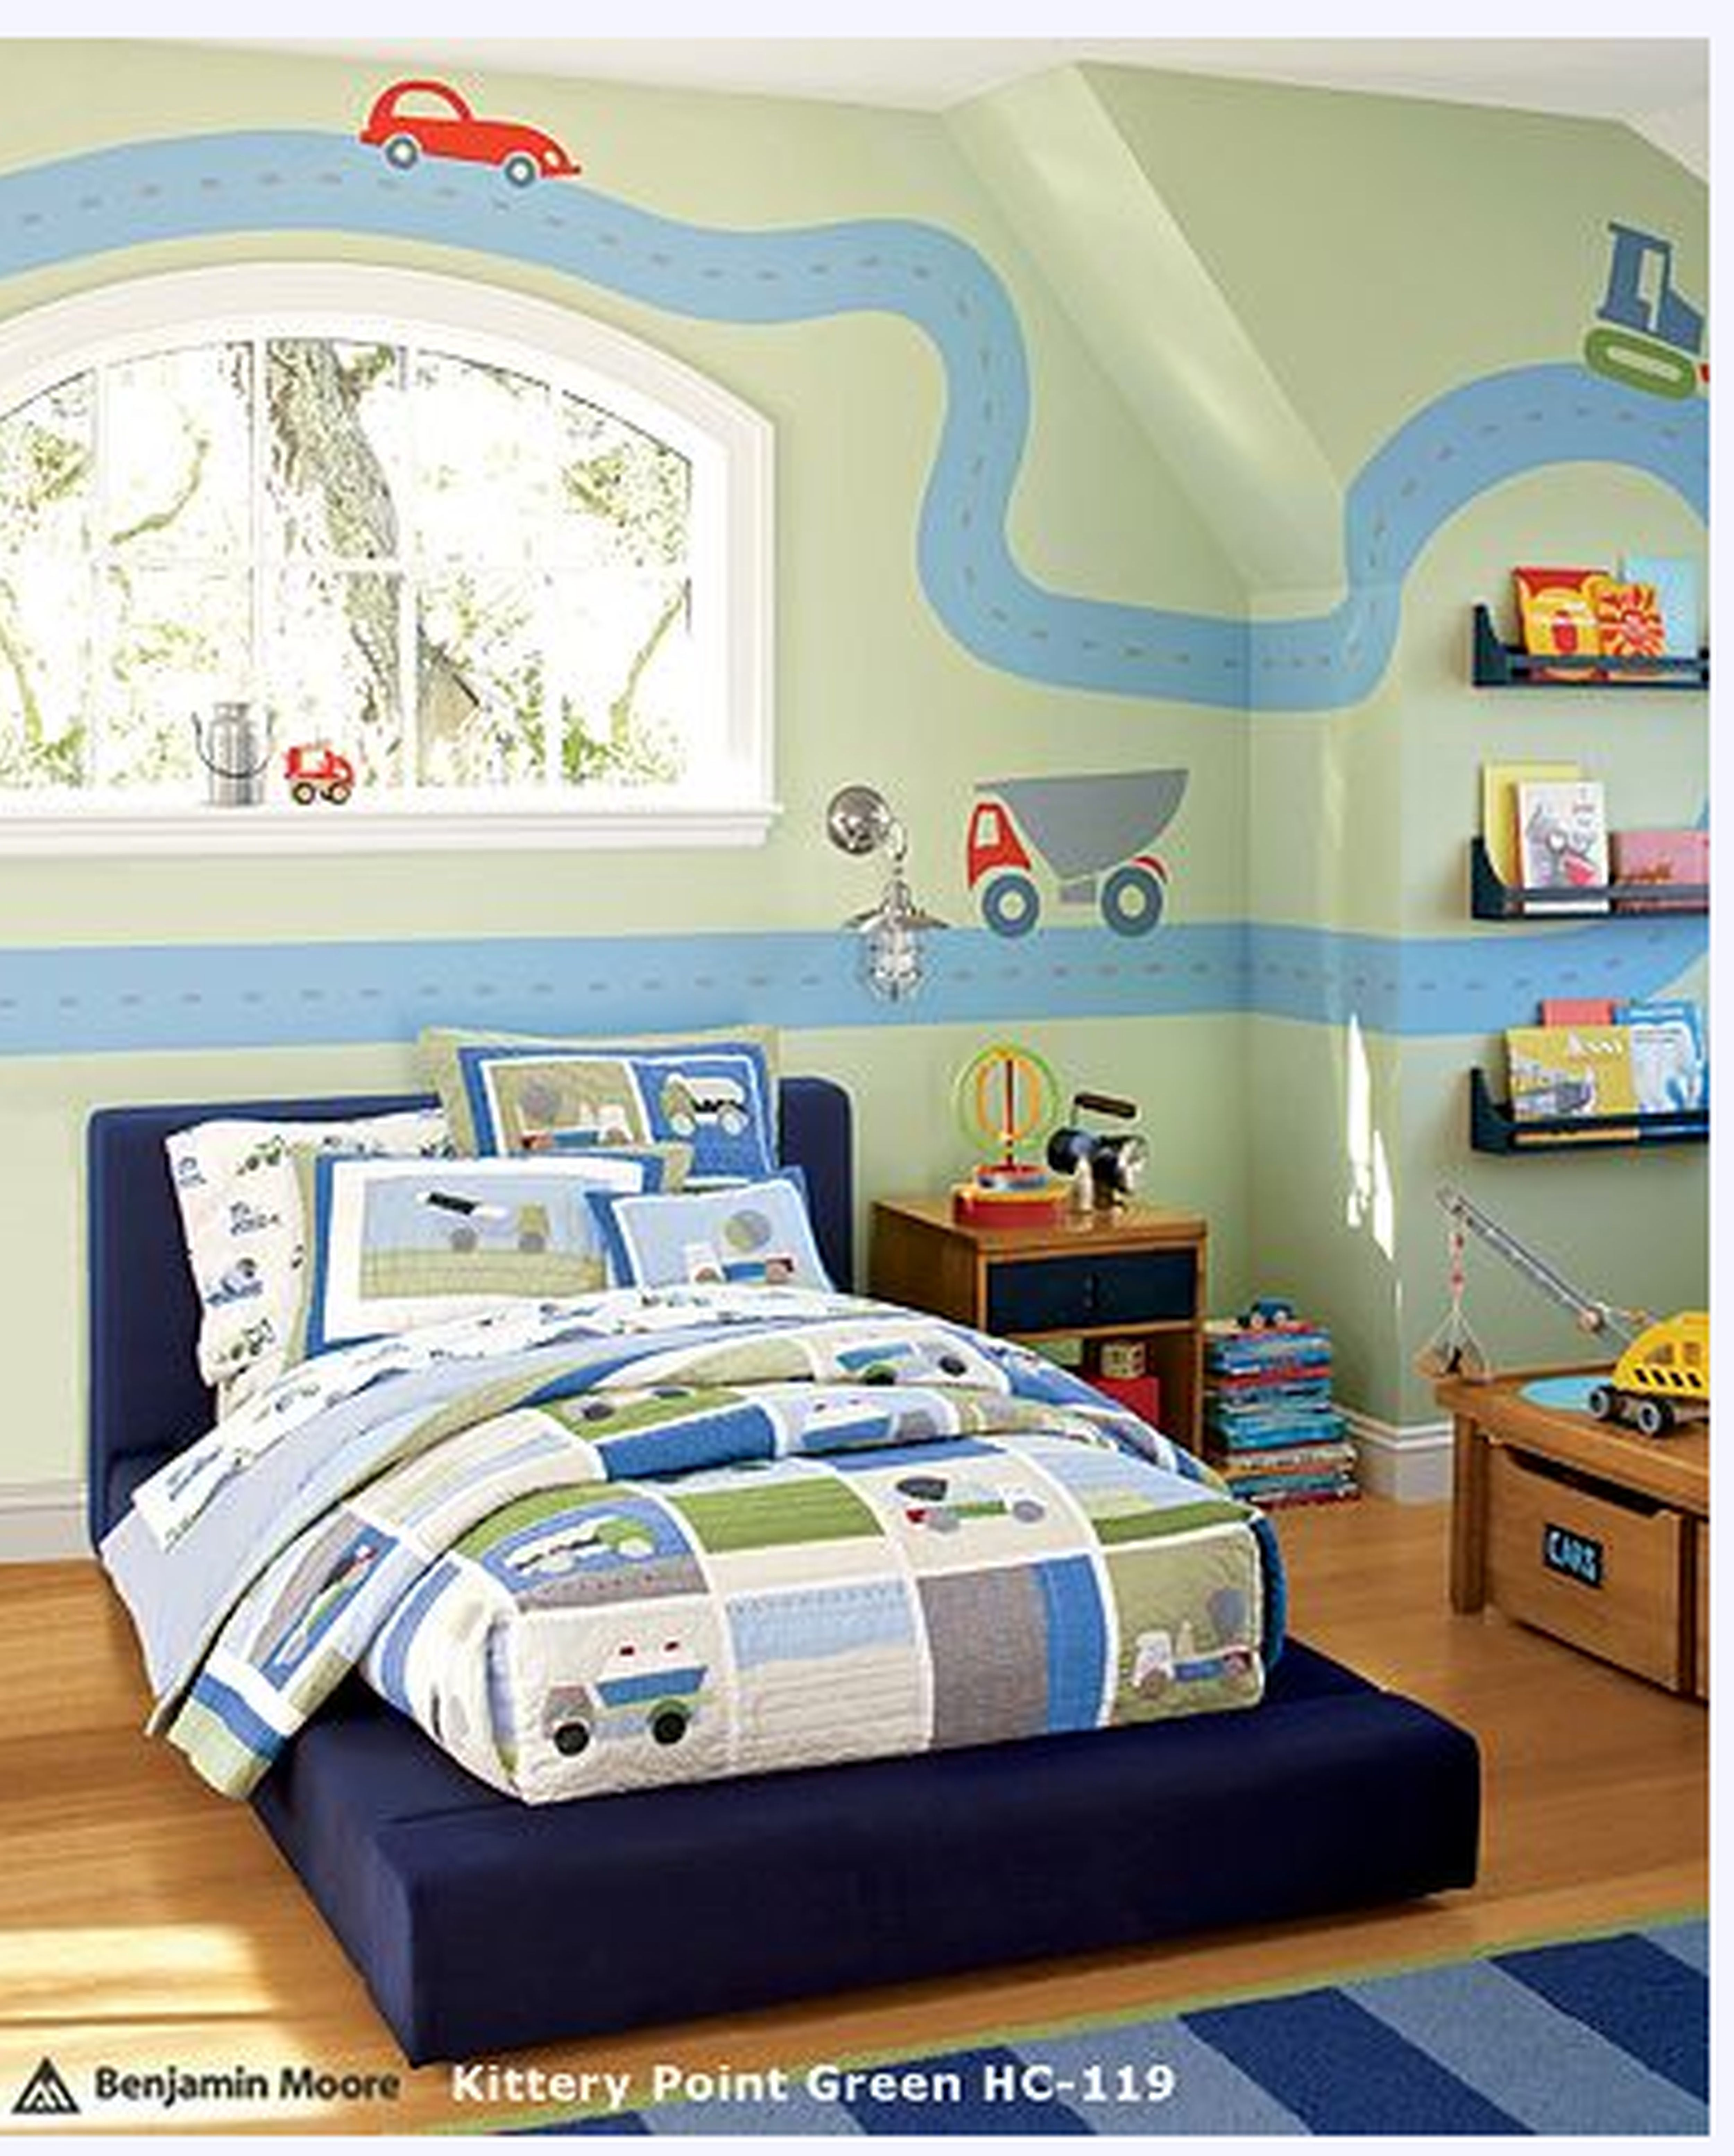 interior blue bed with white blue bed sheet with vehicles pictures